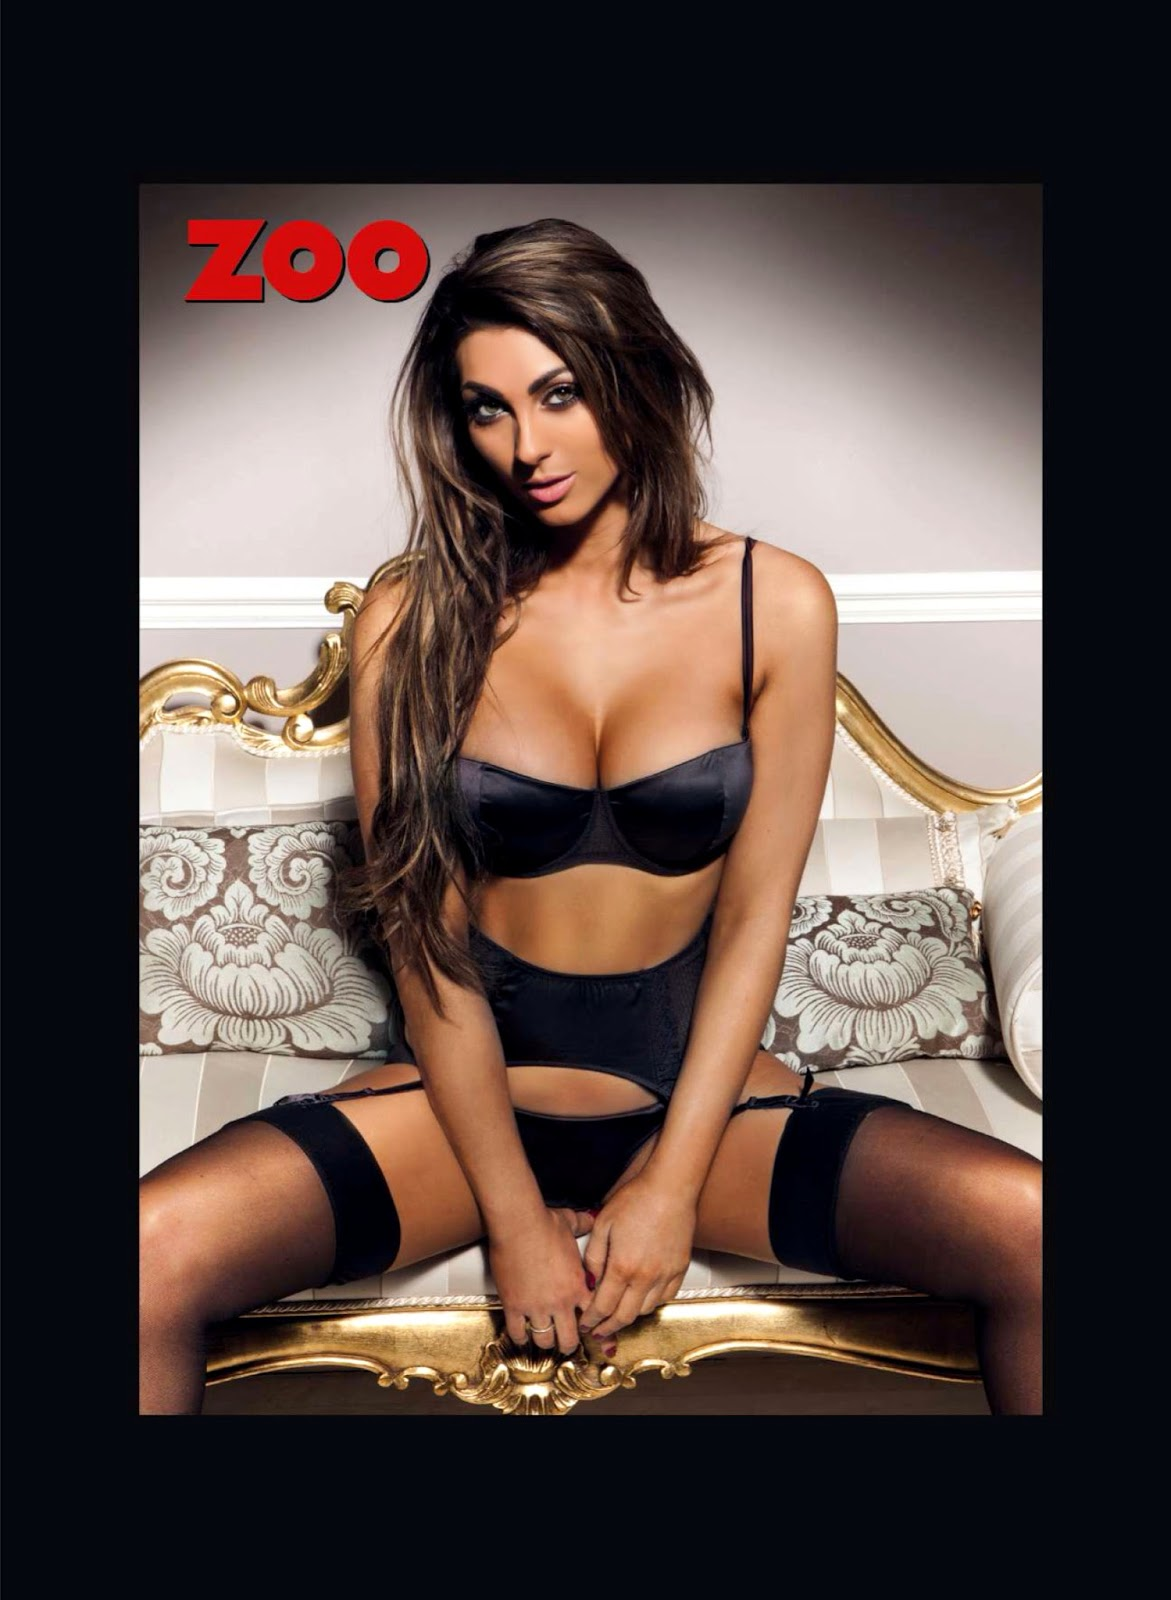 Luisa Zissman HQ Pictures Zoo UK Magazine Photoshoot February 2014